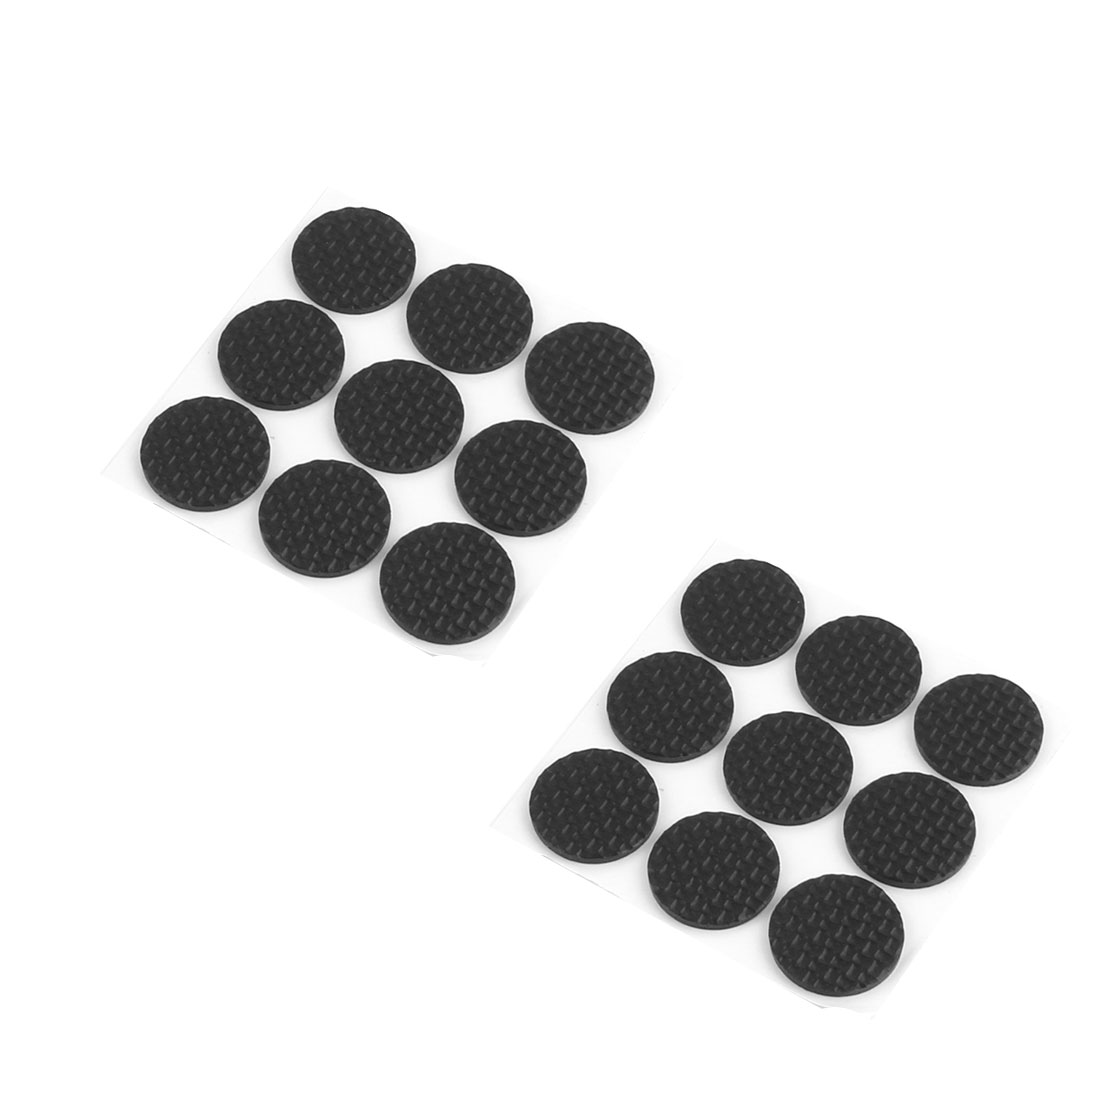 Home Rubber Round Table Chair Furniture Protector Cushion Pads Mat 26mm Dia 18pcs